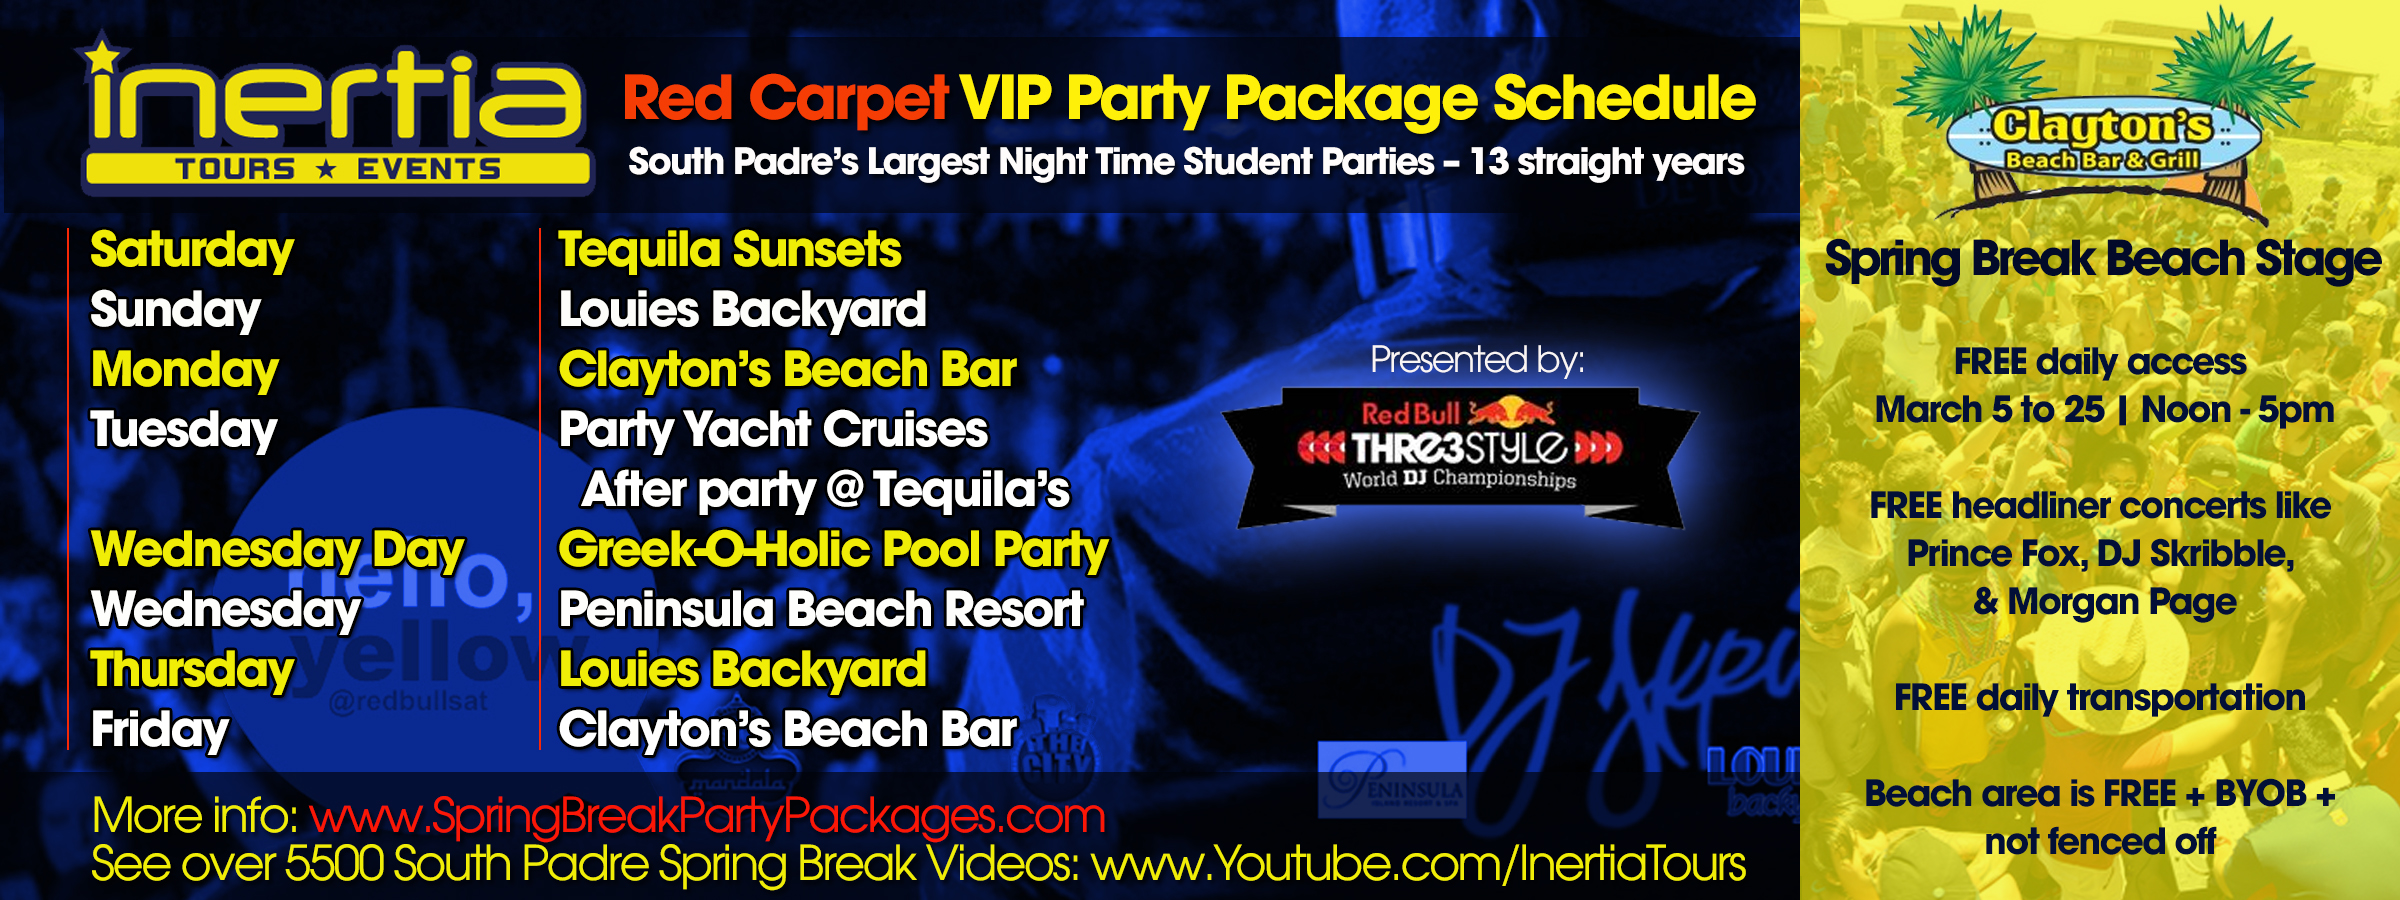 celebrity lineup released by springbreakpartypackages for march